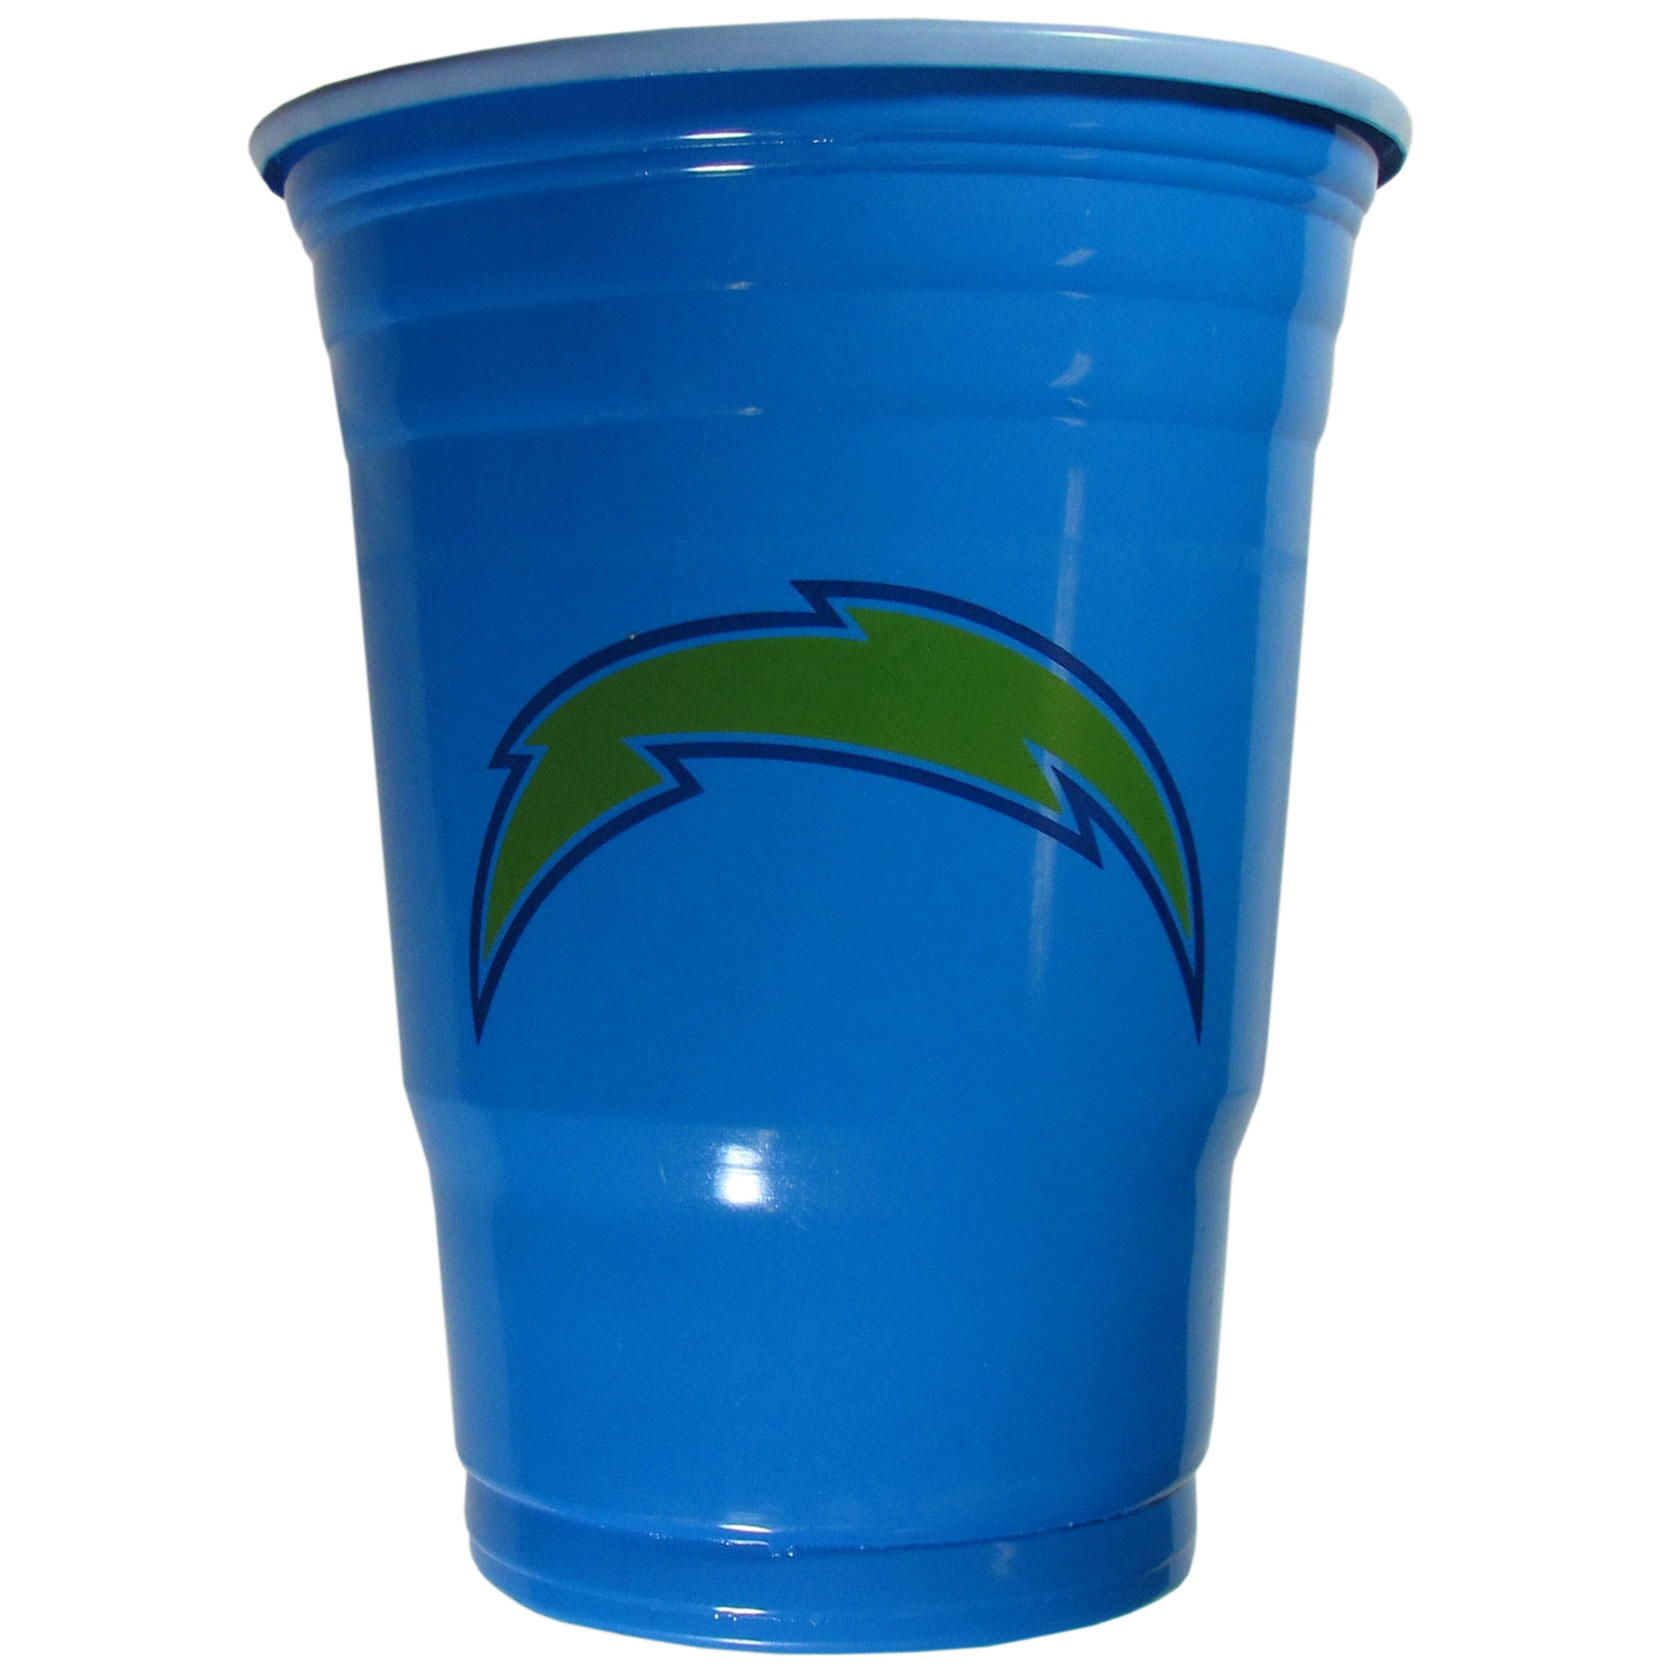 Los Angeles Chargers Plastic Game Day Cups 2 sleeves of 18 (36 Cups) - Our 18 ounce game day cups are what every tailgating or backyard events needs! The cups feature a big Los Angeles Chargers logo so you can show off your team pride. The popular 18 ounce size is perfect for drinks or ping pong balls! 2 sleeves of 18 cups, 36 cups in total.